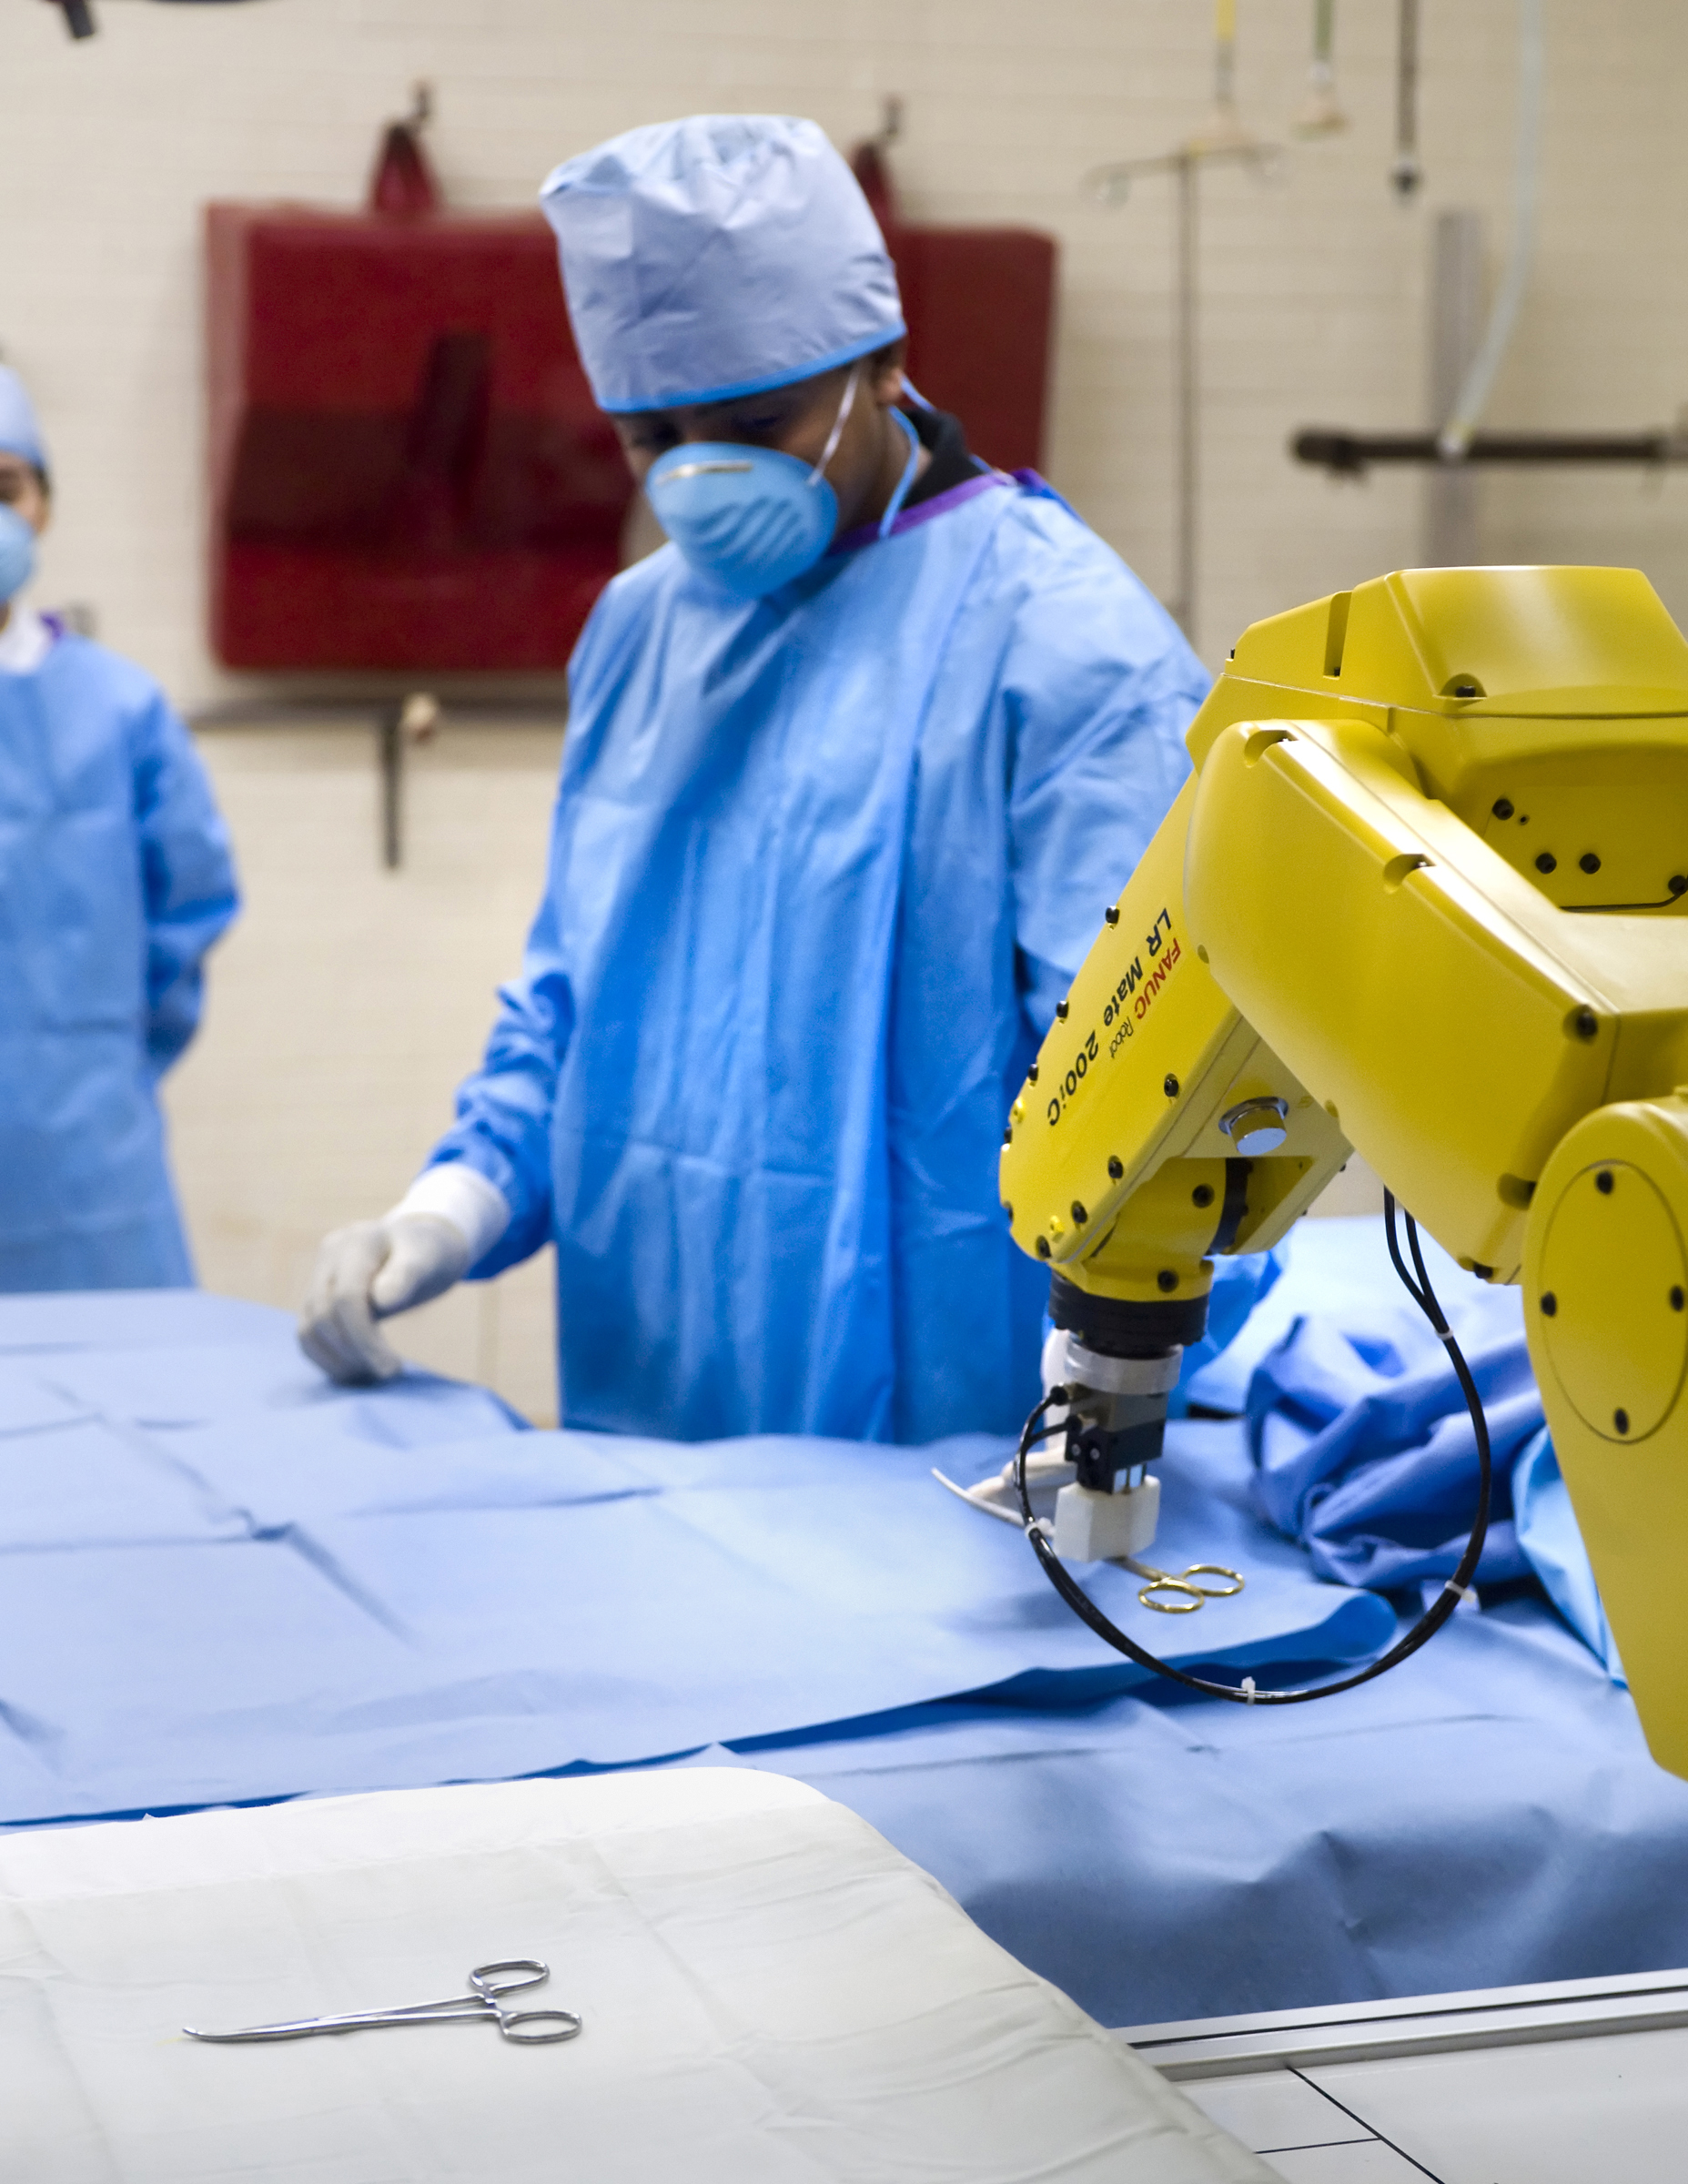 Future surgeons may use robotic nurse, 'gesture recognition